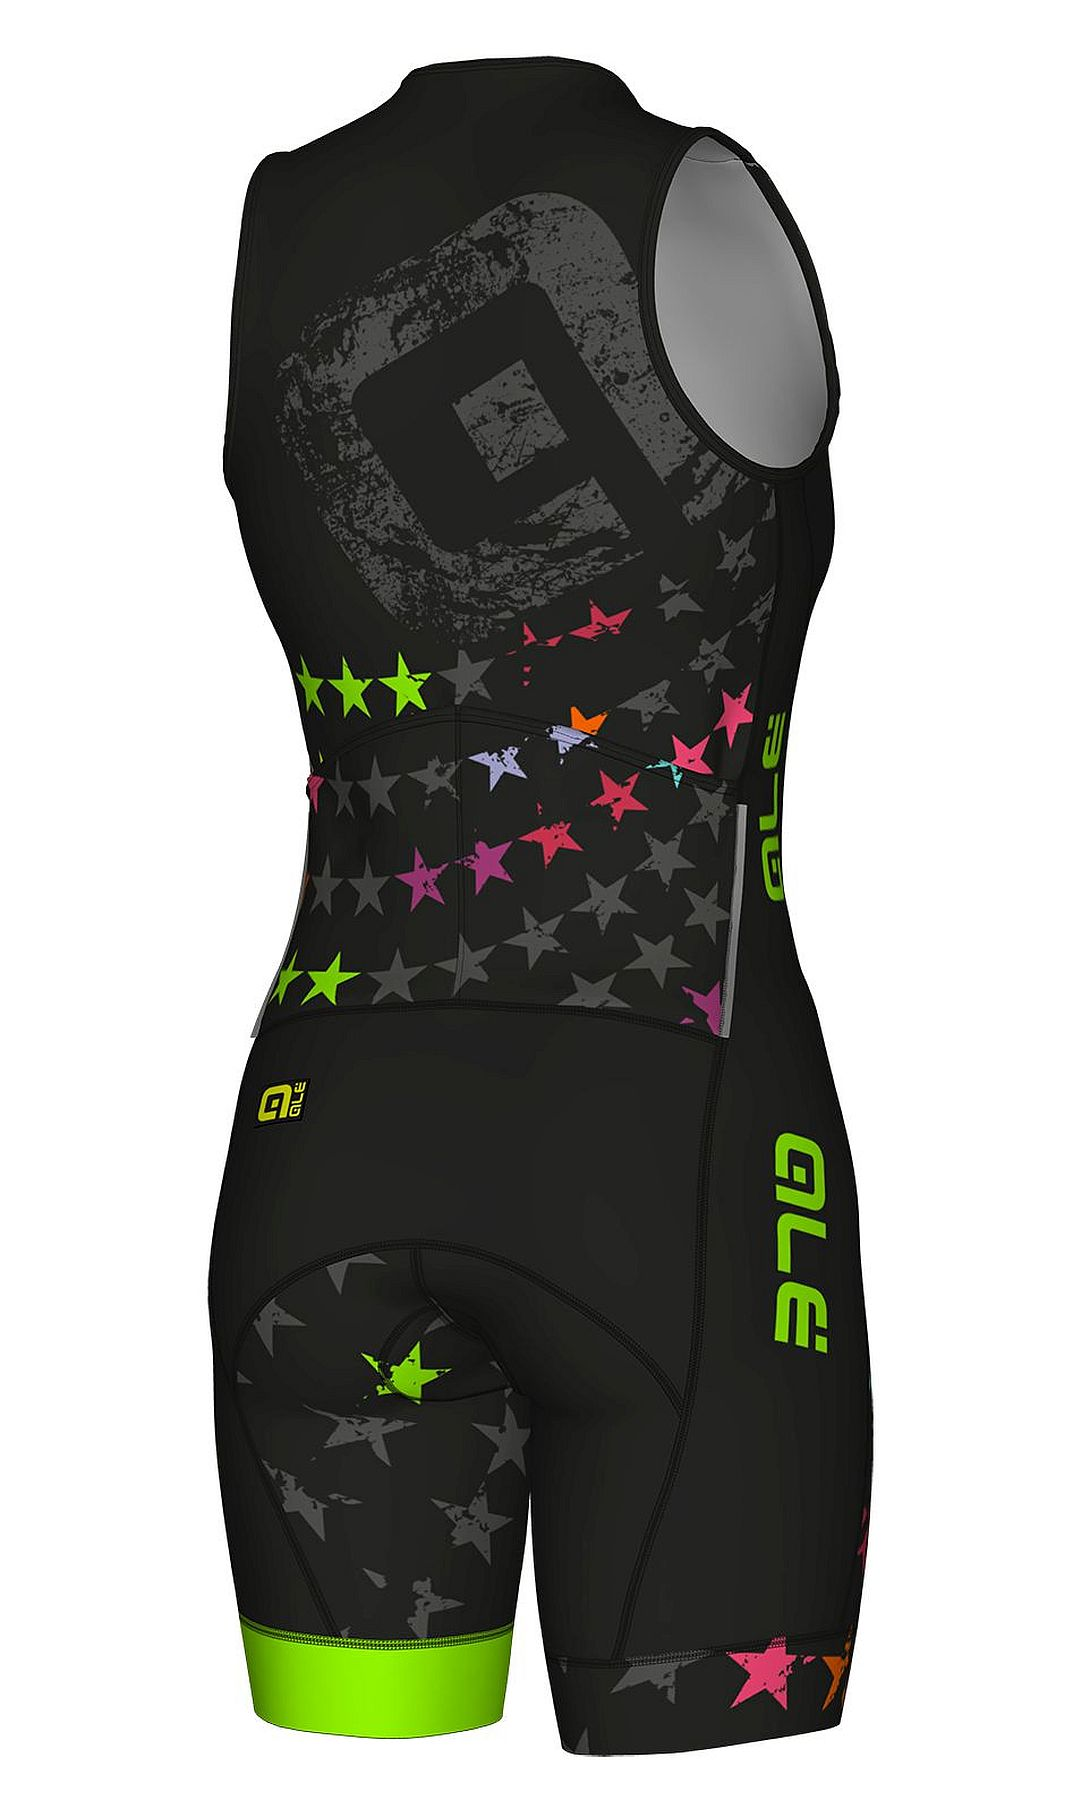 detail ALÉ LONG TRI STELLE SKINSUIT Black/Fluo Green